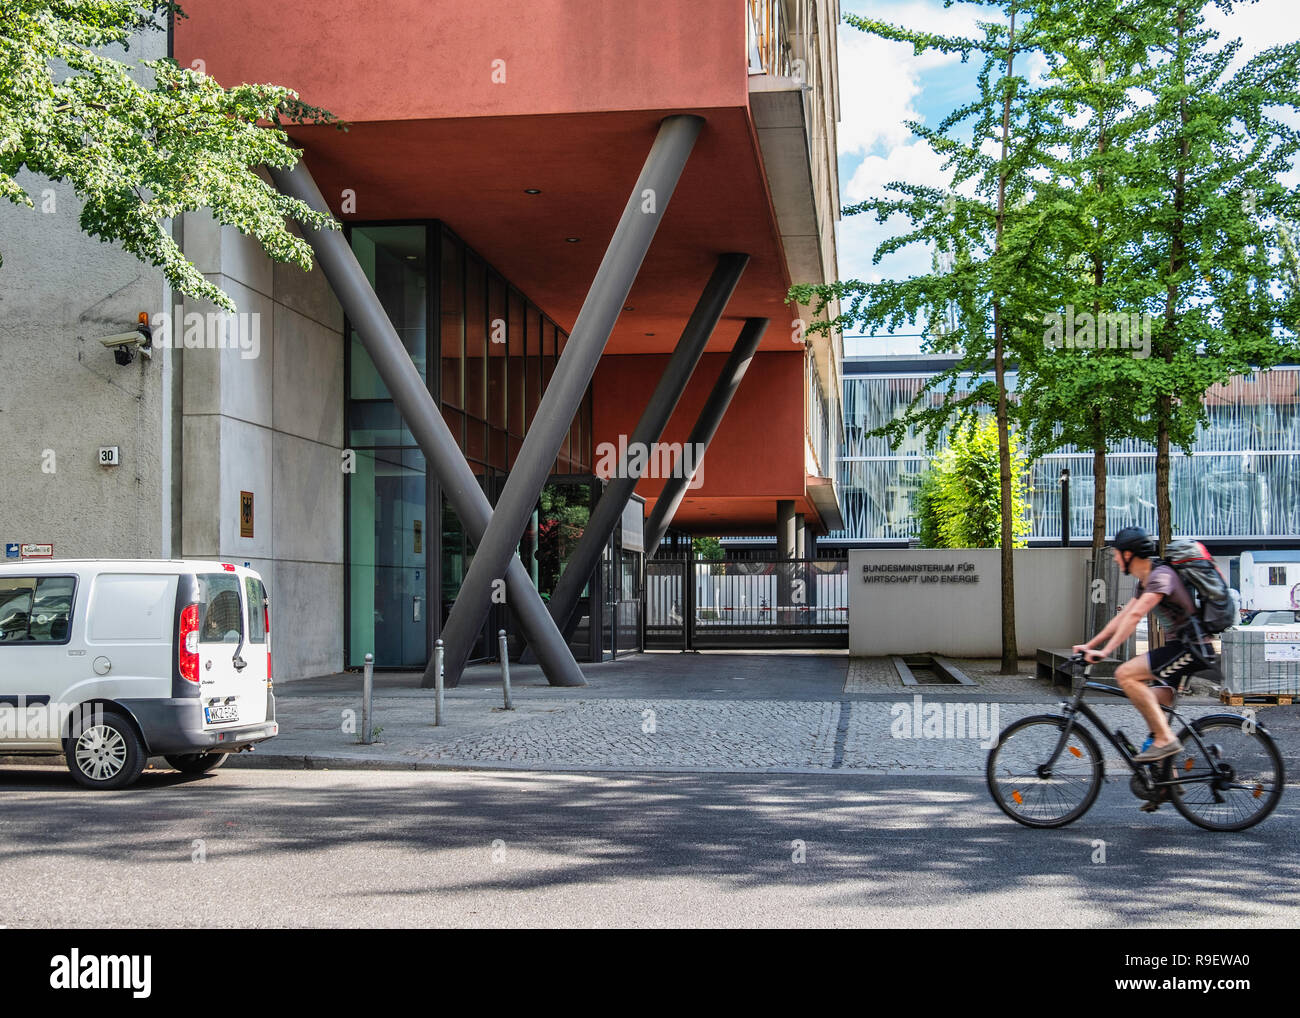 Berlin-Mitte.Hannoversche Str. 128-30. Federal Ministry for Economic Affairs and Energy, German Government modern building exterior. - Stock Image